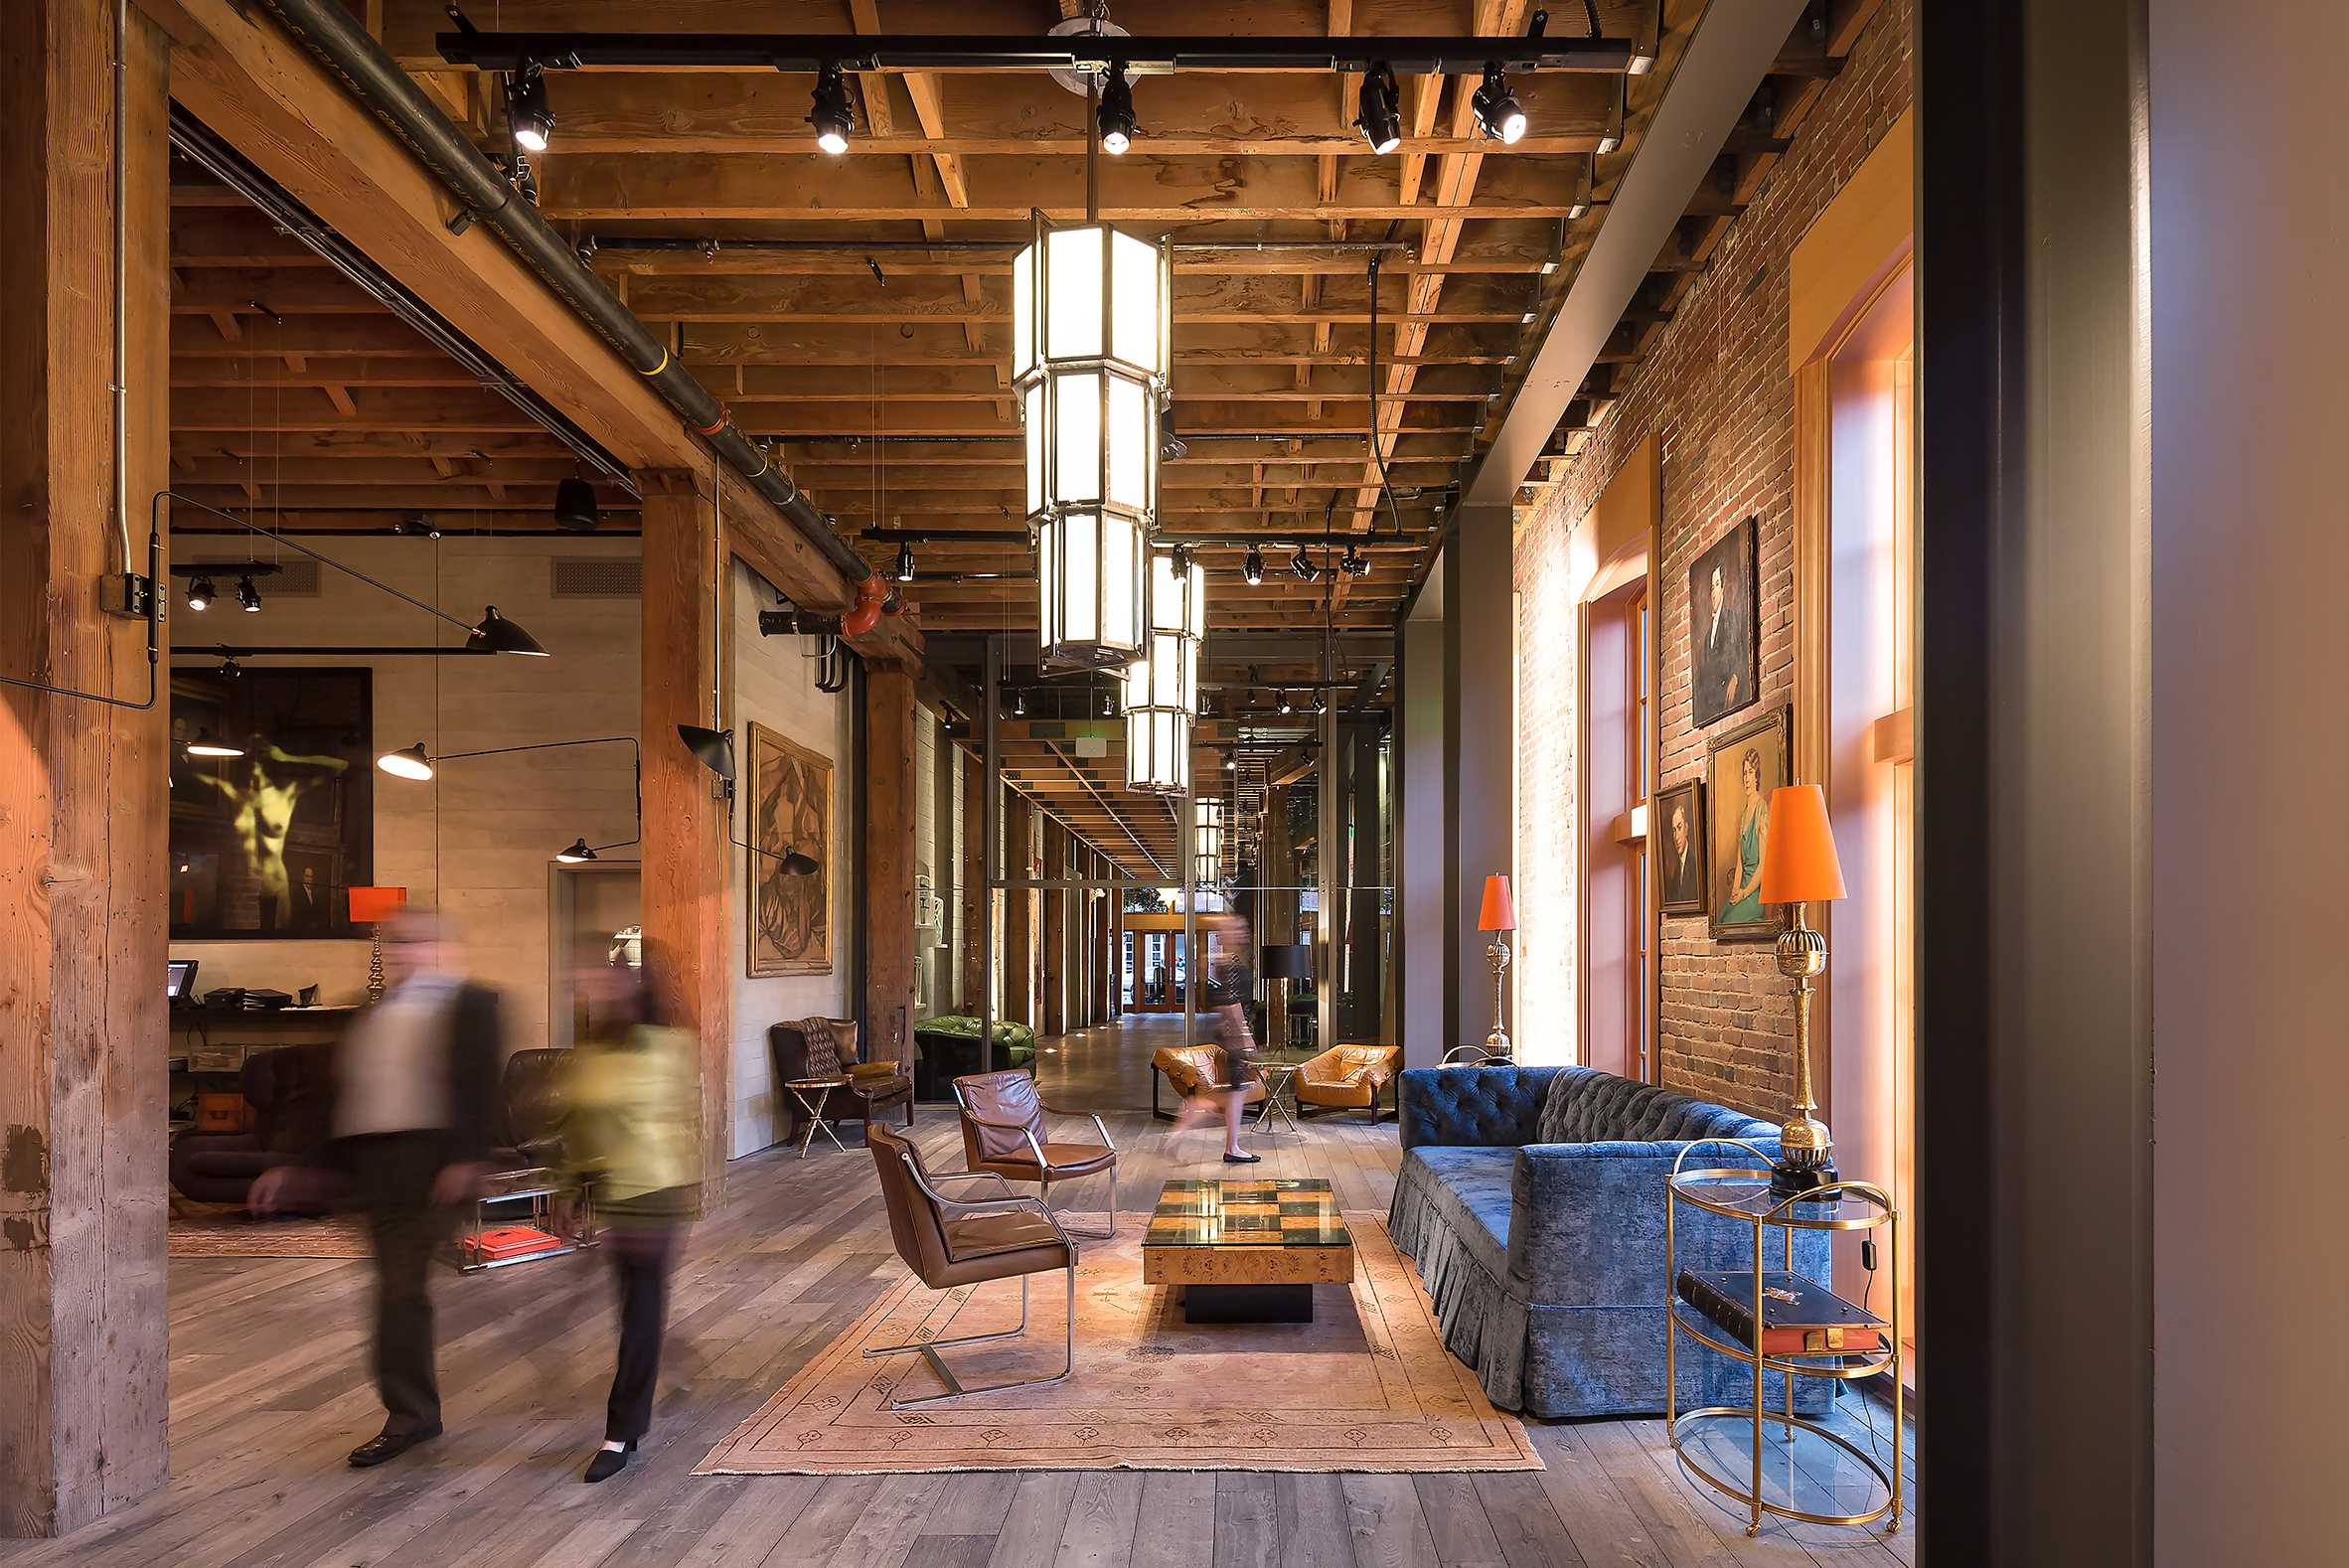 Interior of The Battery Social Club in San Francisco with Brick Masonry Walls and Wooden Floor/Ceiling and Furniture